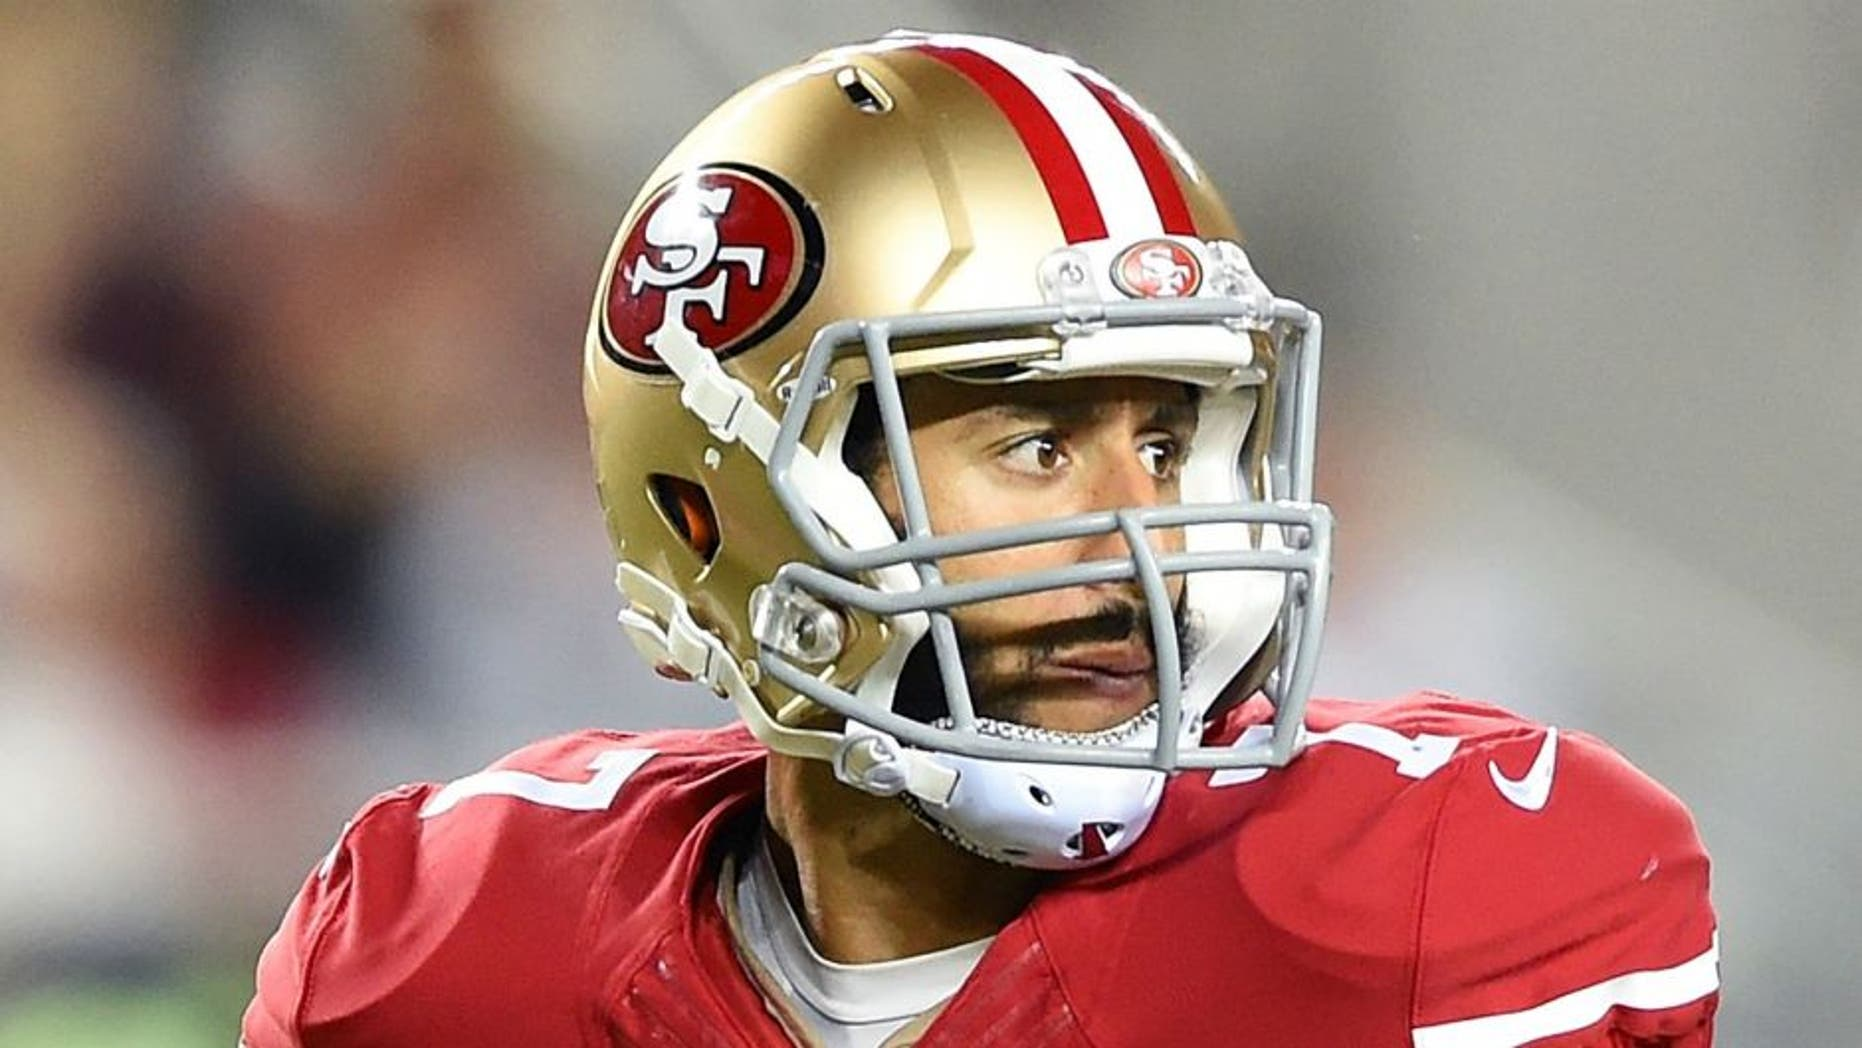 SANTA CLARA, CA - OCTOBER 22: Colin Kaepernick #7 of the San Francisco 49ers looks to pass against the Seattle Seahawks during an NFL football game at Levi's Stadium on October 22, 2015 in Santa Clara, California. (Photo by Thearon W. Henderson/Getty Images)